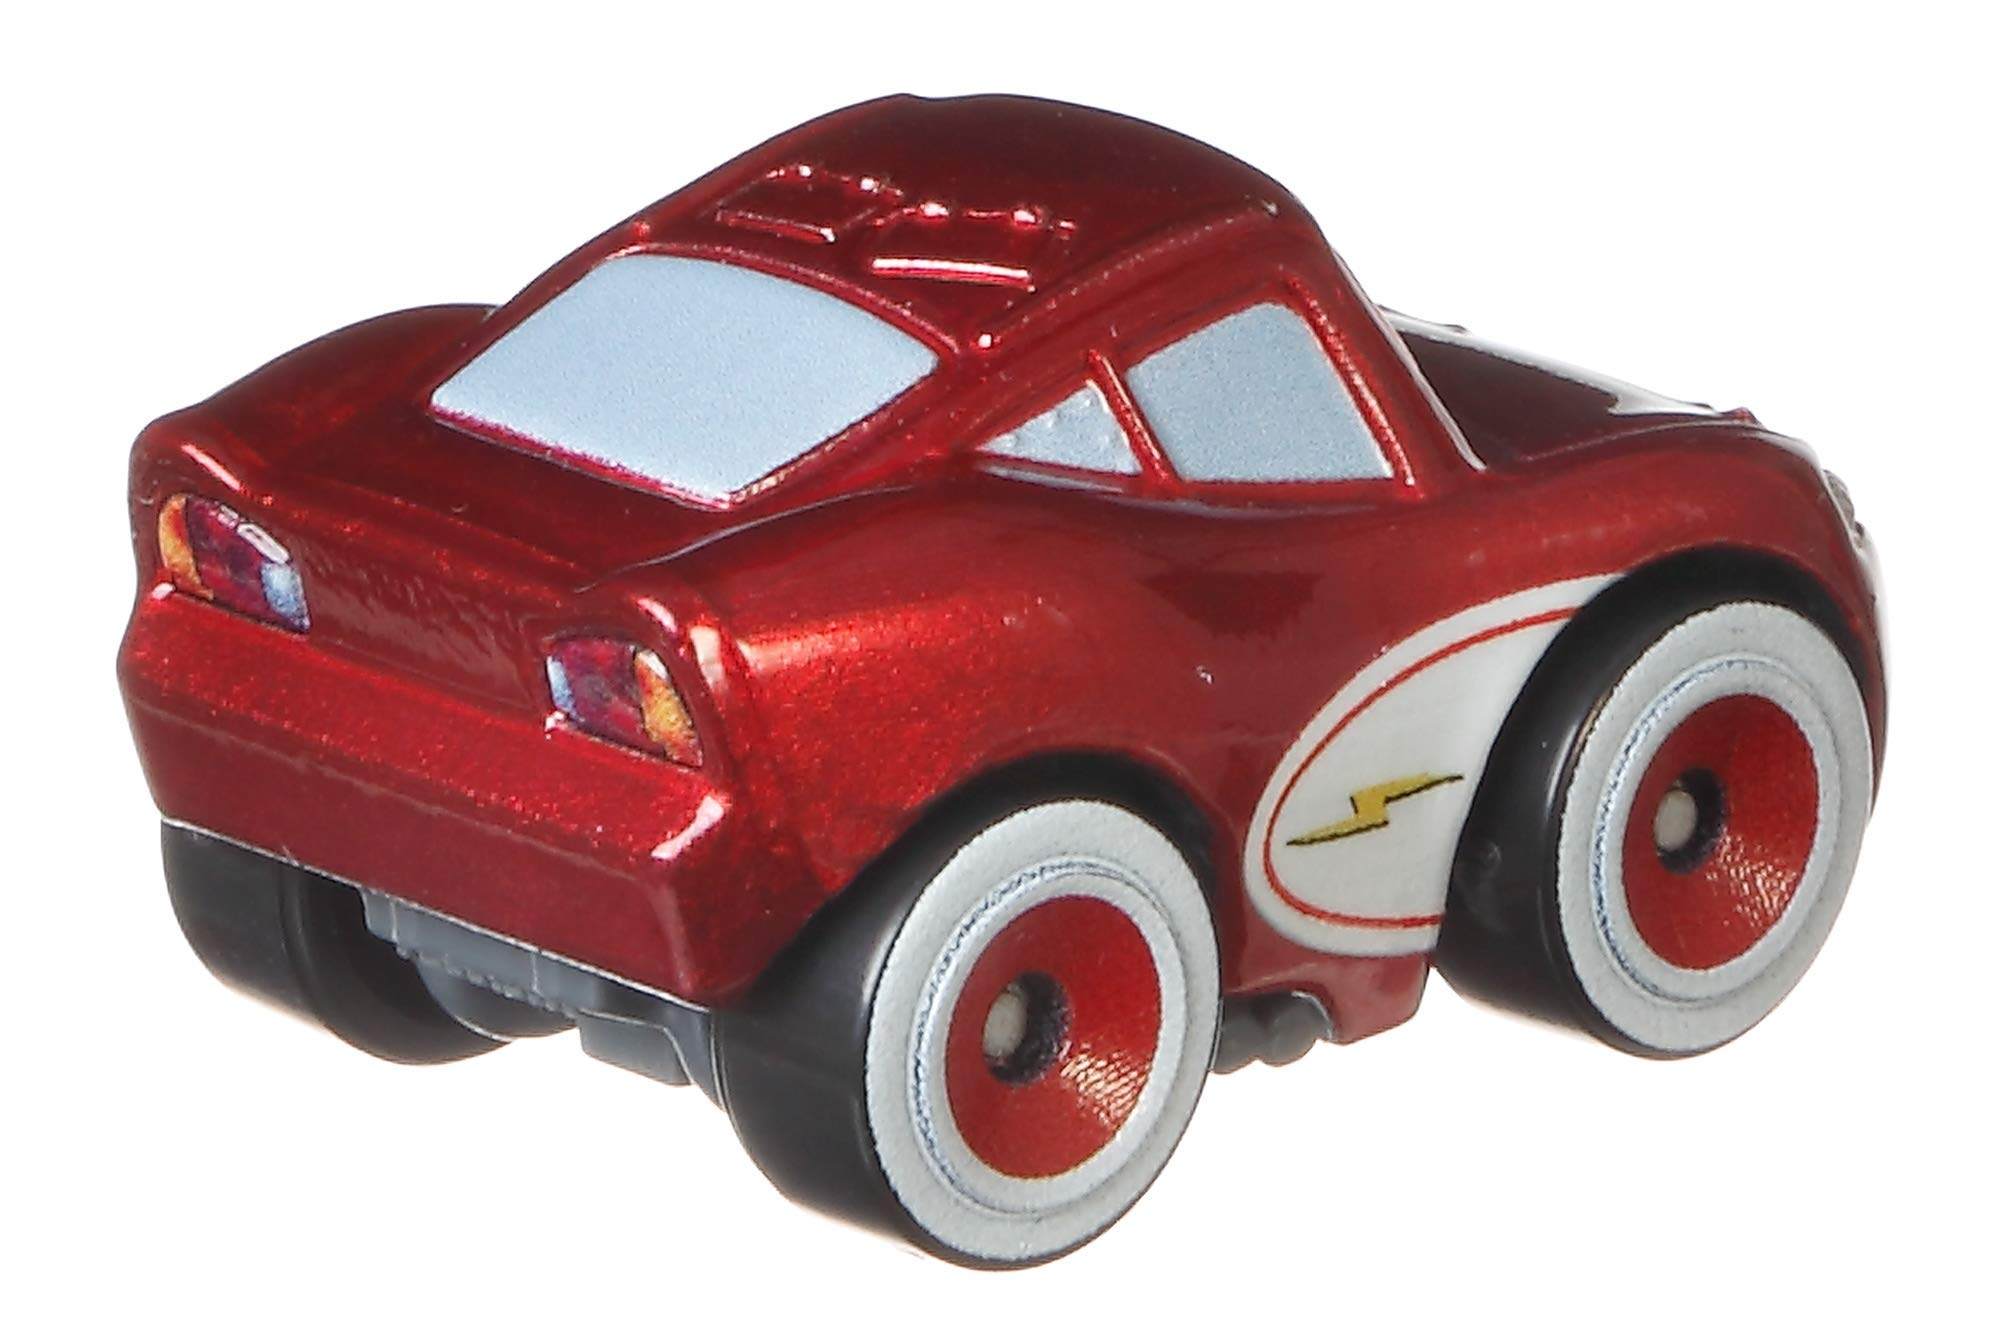 Disney Pixar Cars - Mini Racers 3 Pack - FLO, Red Ramone and Cruisin Lightning Mcqueen: Amazon.es: Juguetes y juegos